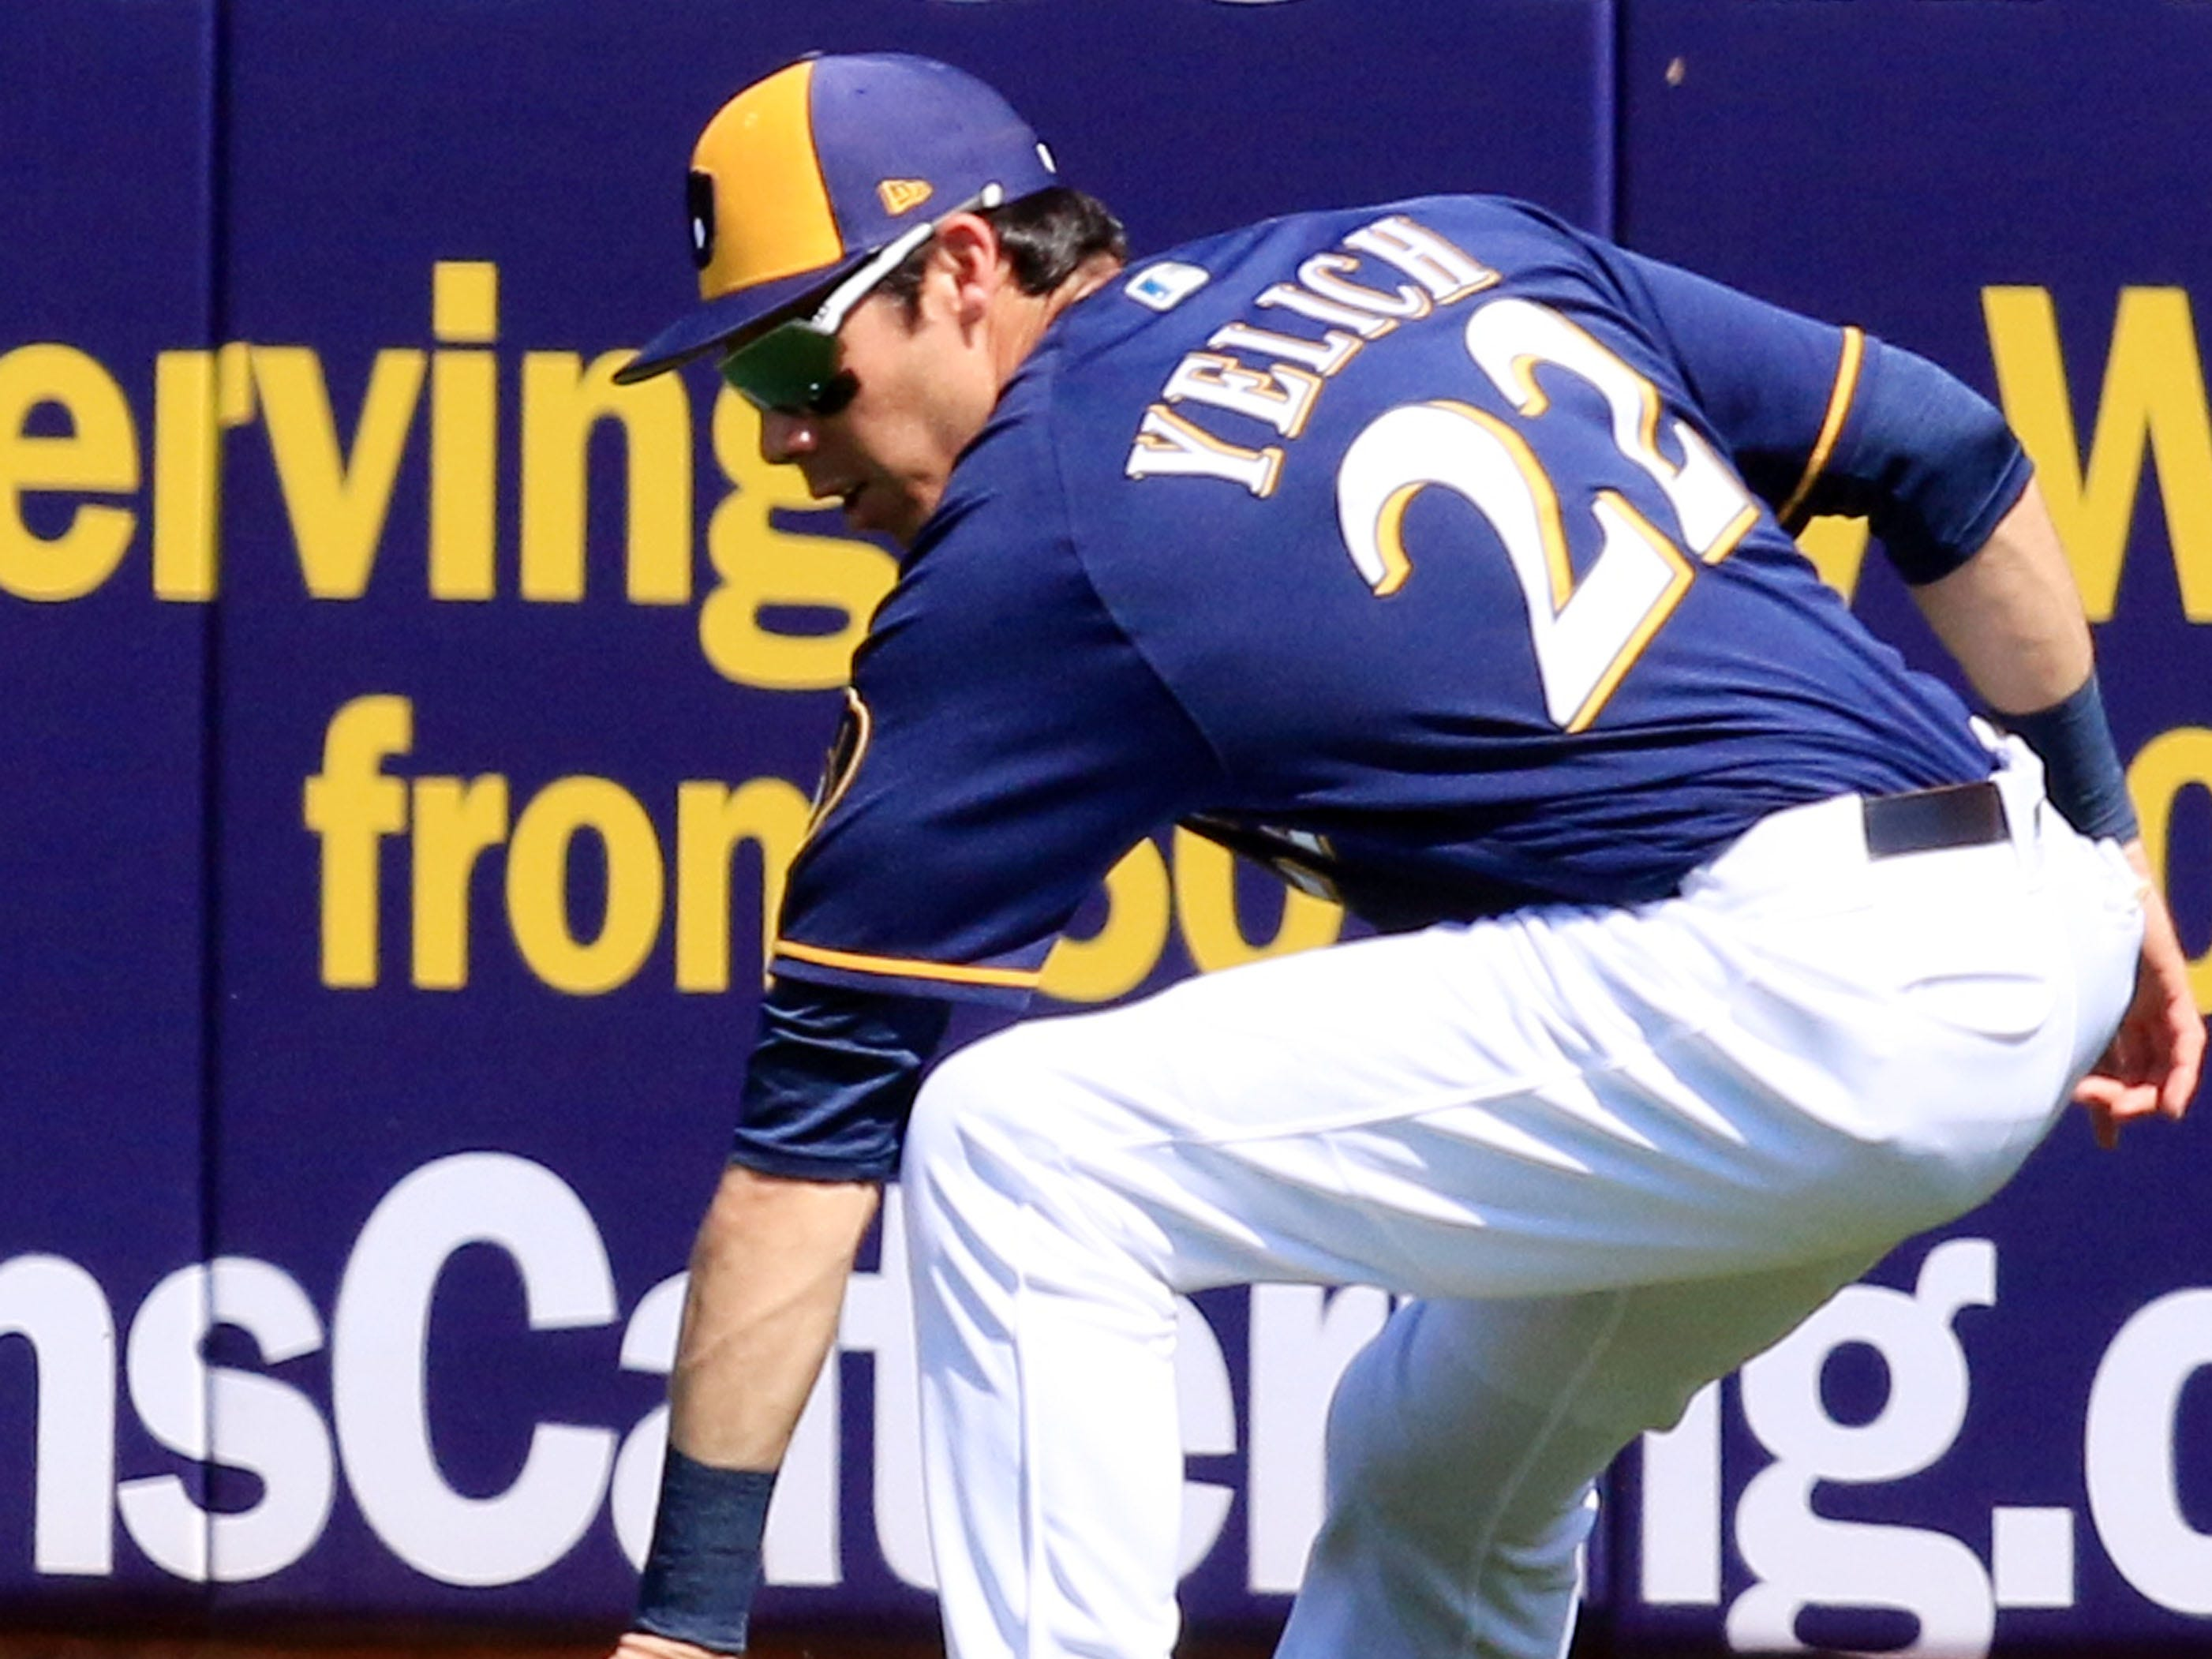 Brewers outfielder Christian Yelich picks up a single in the outfield.